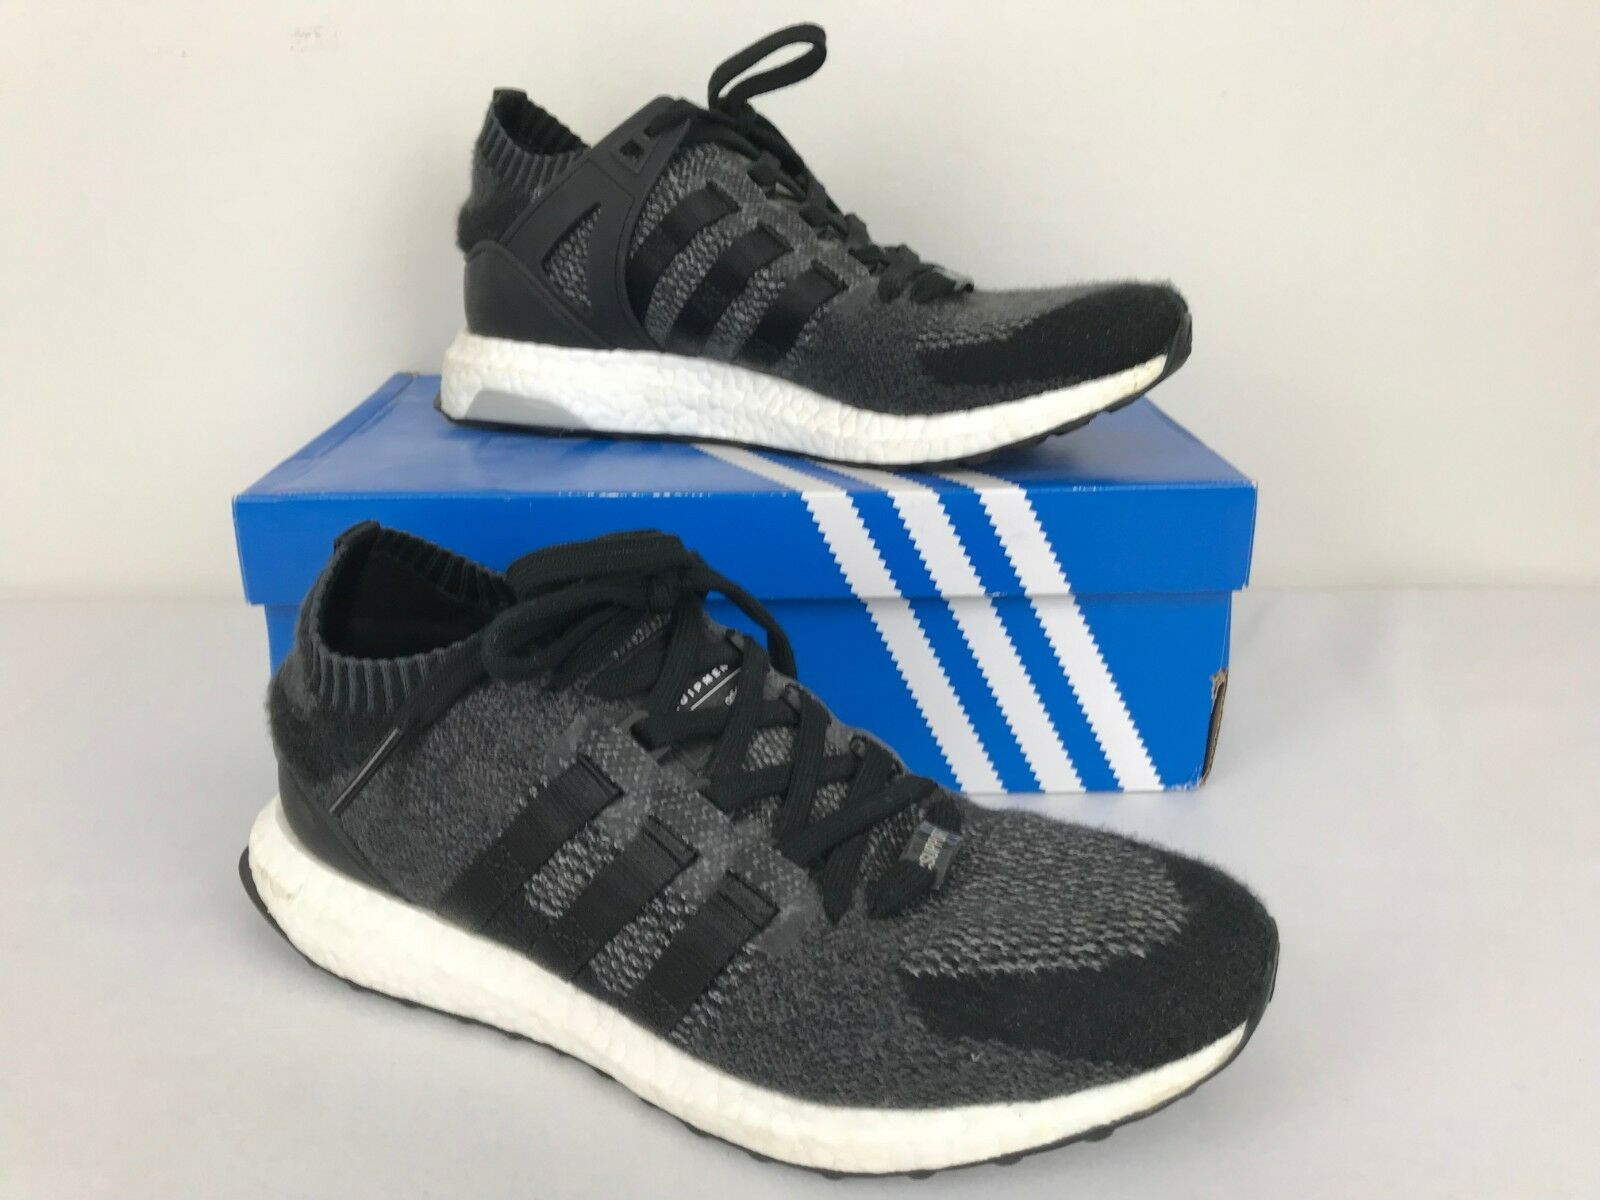 85af5244a ADIDAS EQT SUPPORT ULTRABOOST ULTRABOOST ULTRABOOST RUNNING SHOES MEN SZ 9  BLACK WHITE 4a65b8